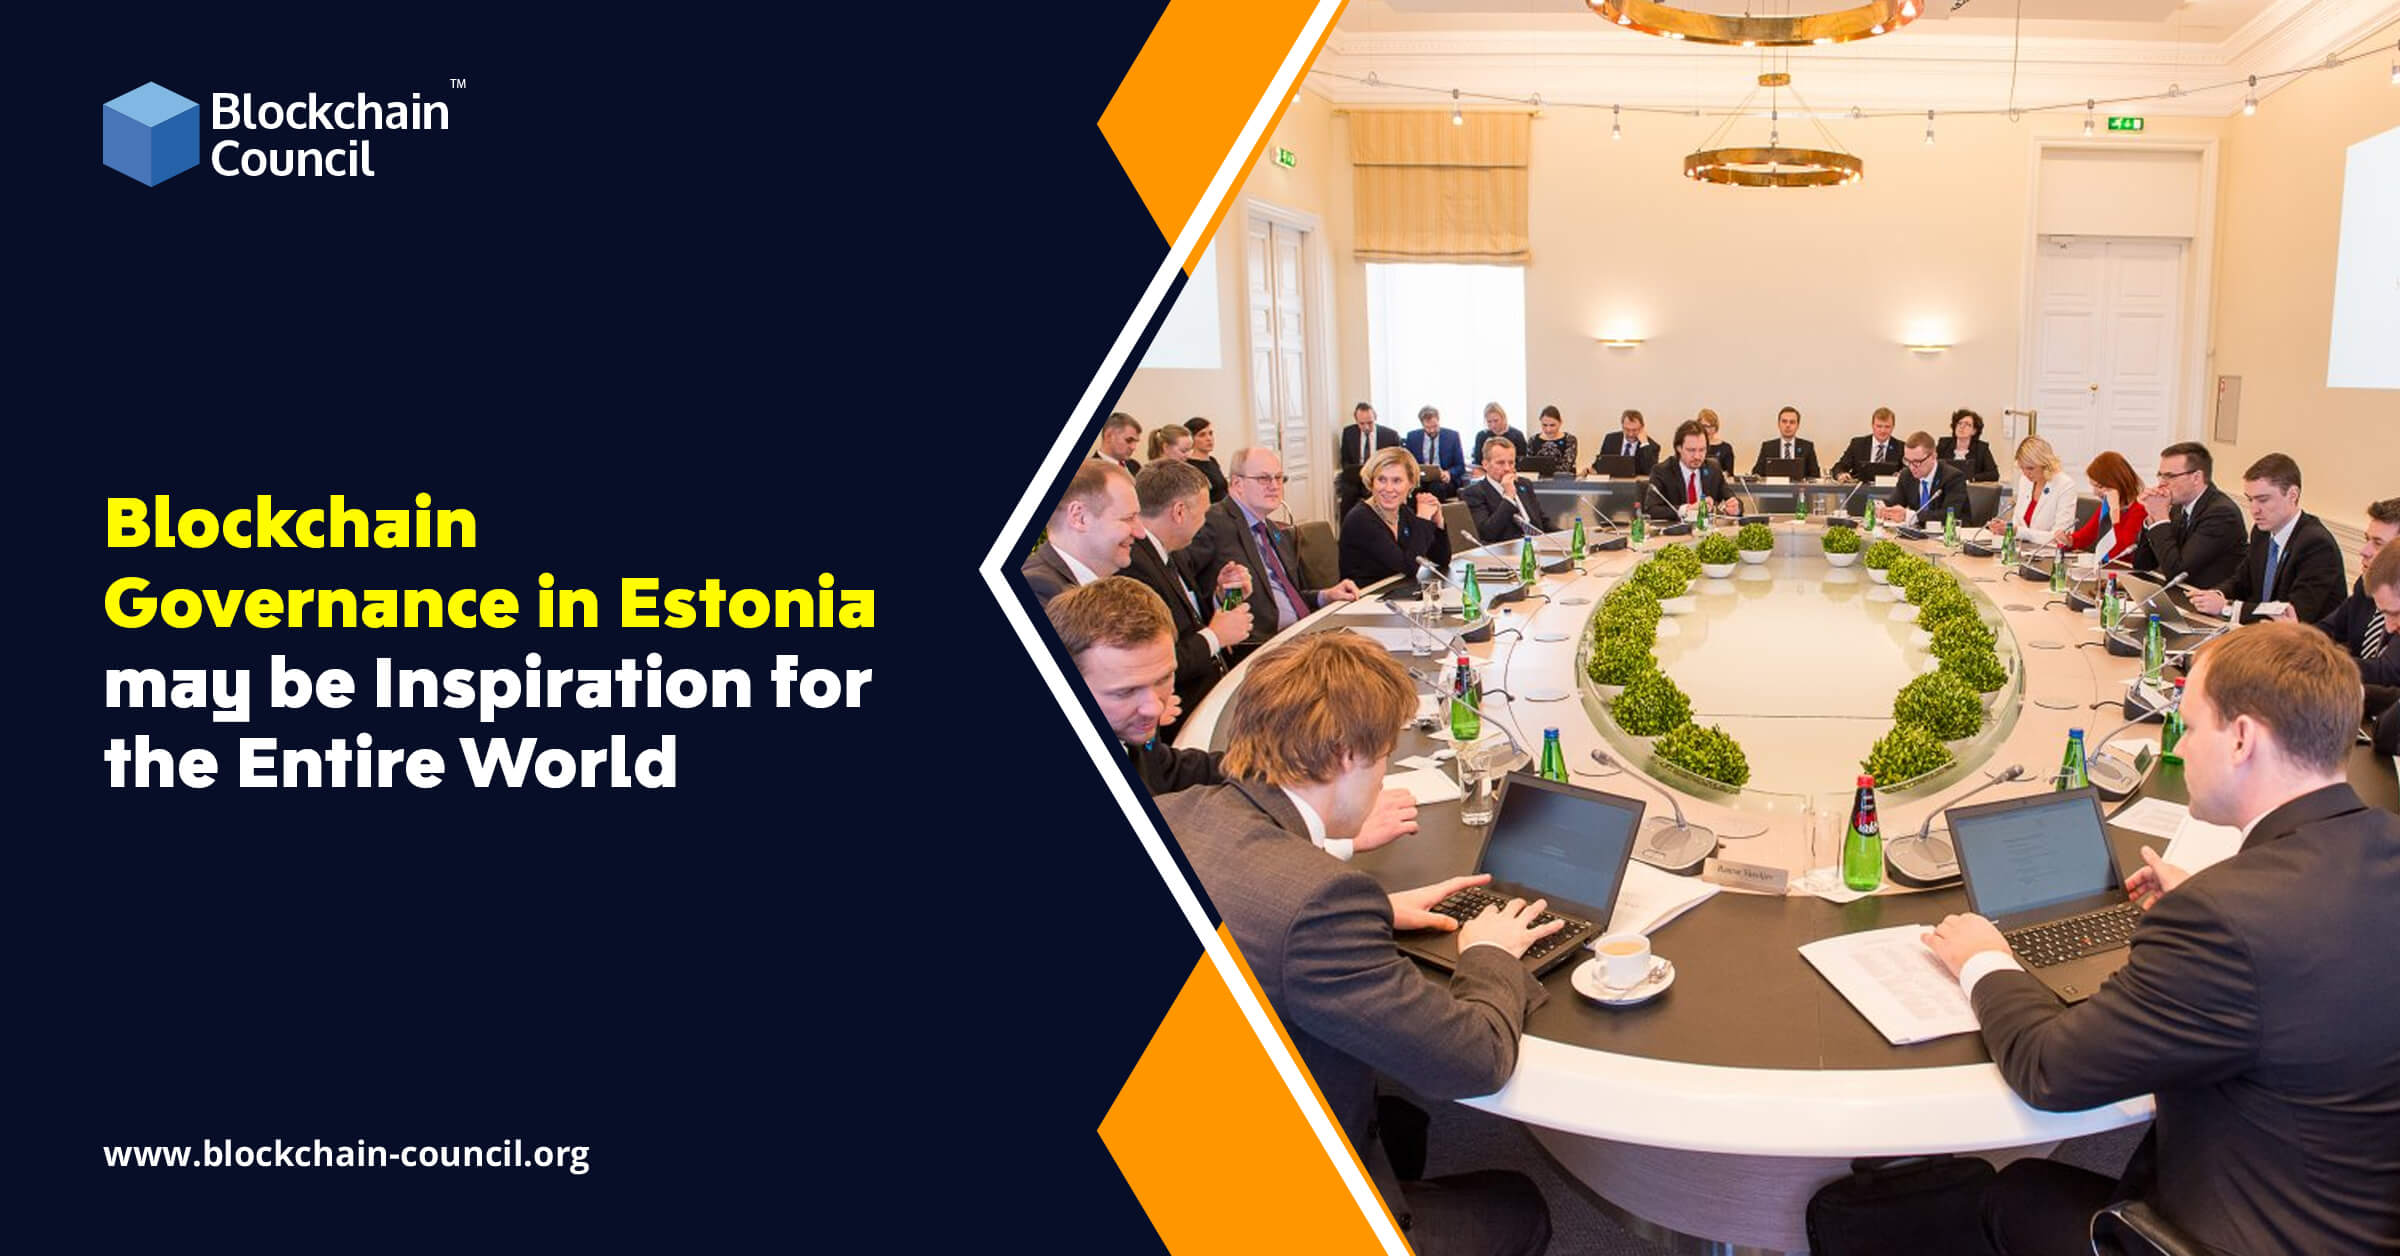 Blockchain Governance in Estonia may be Inspiration for the Entire World